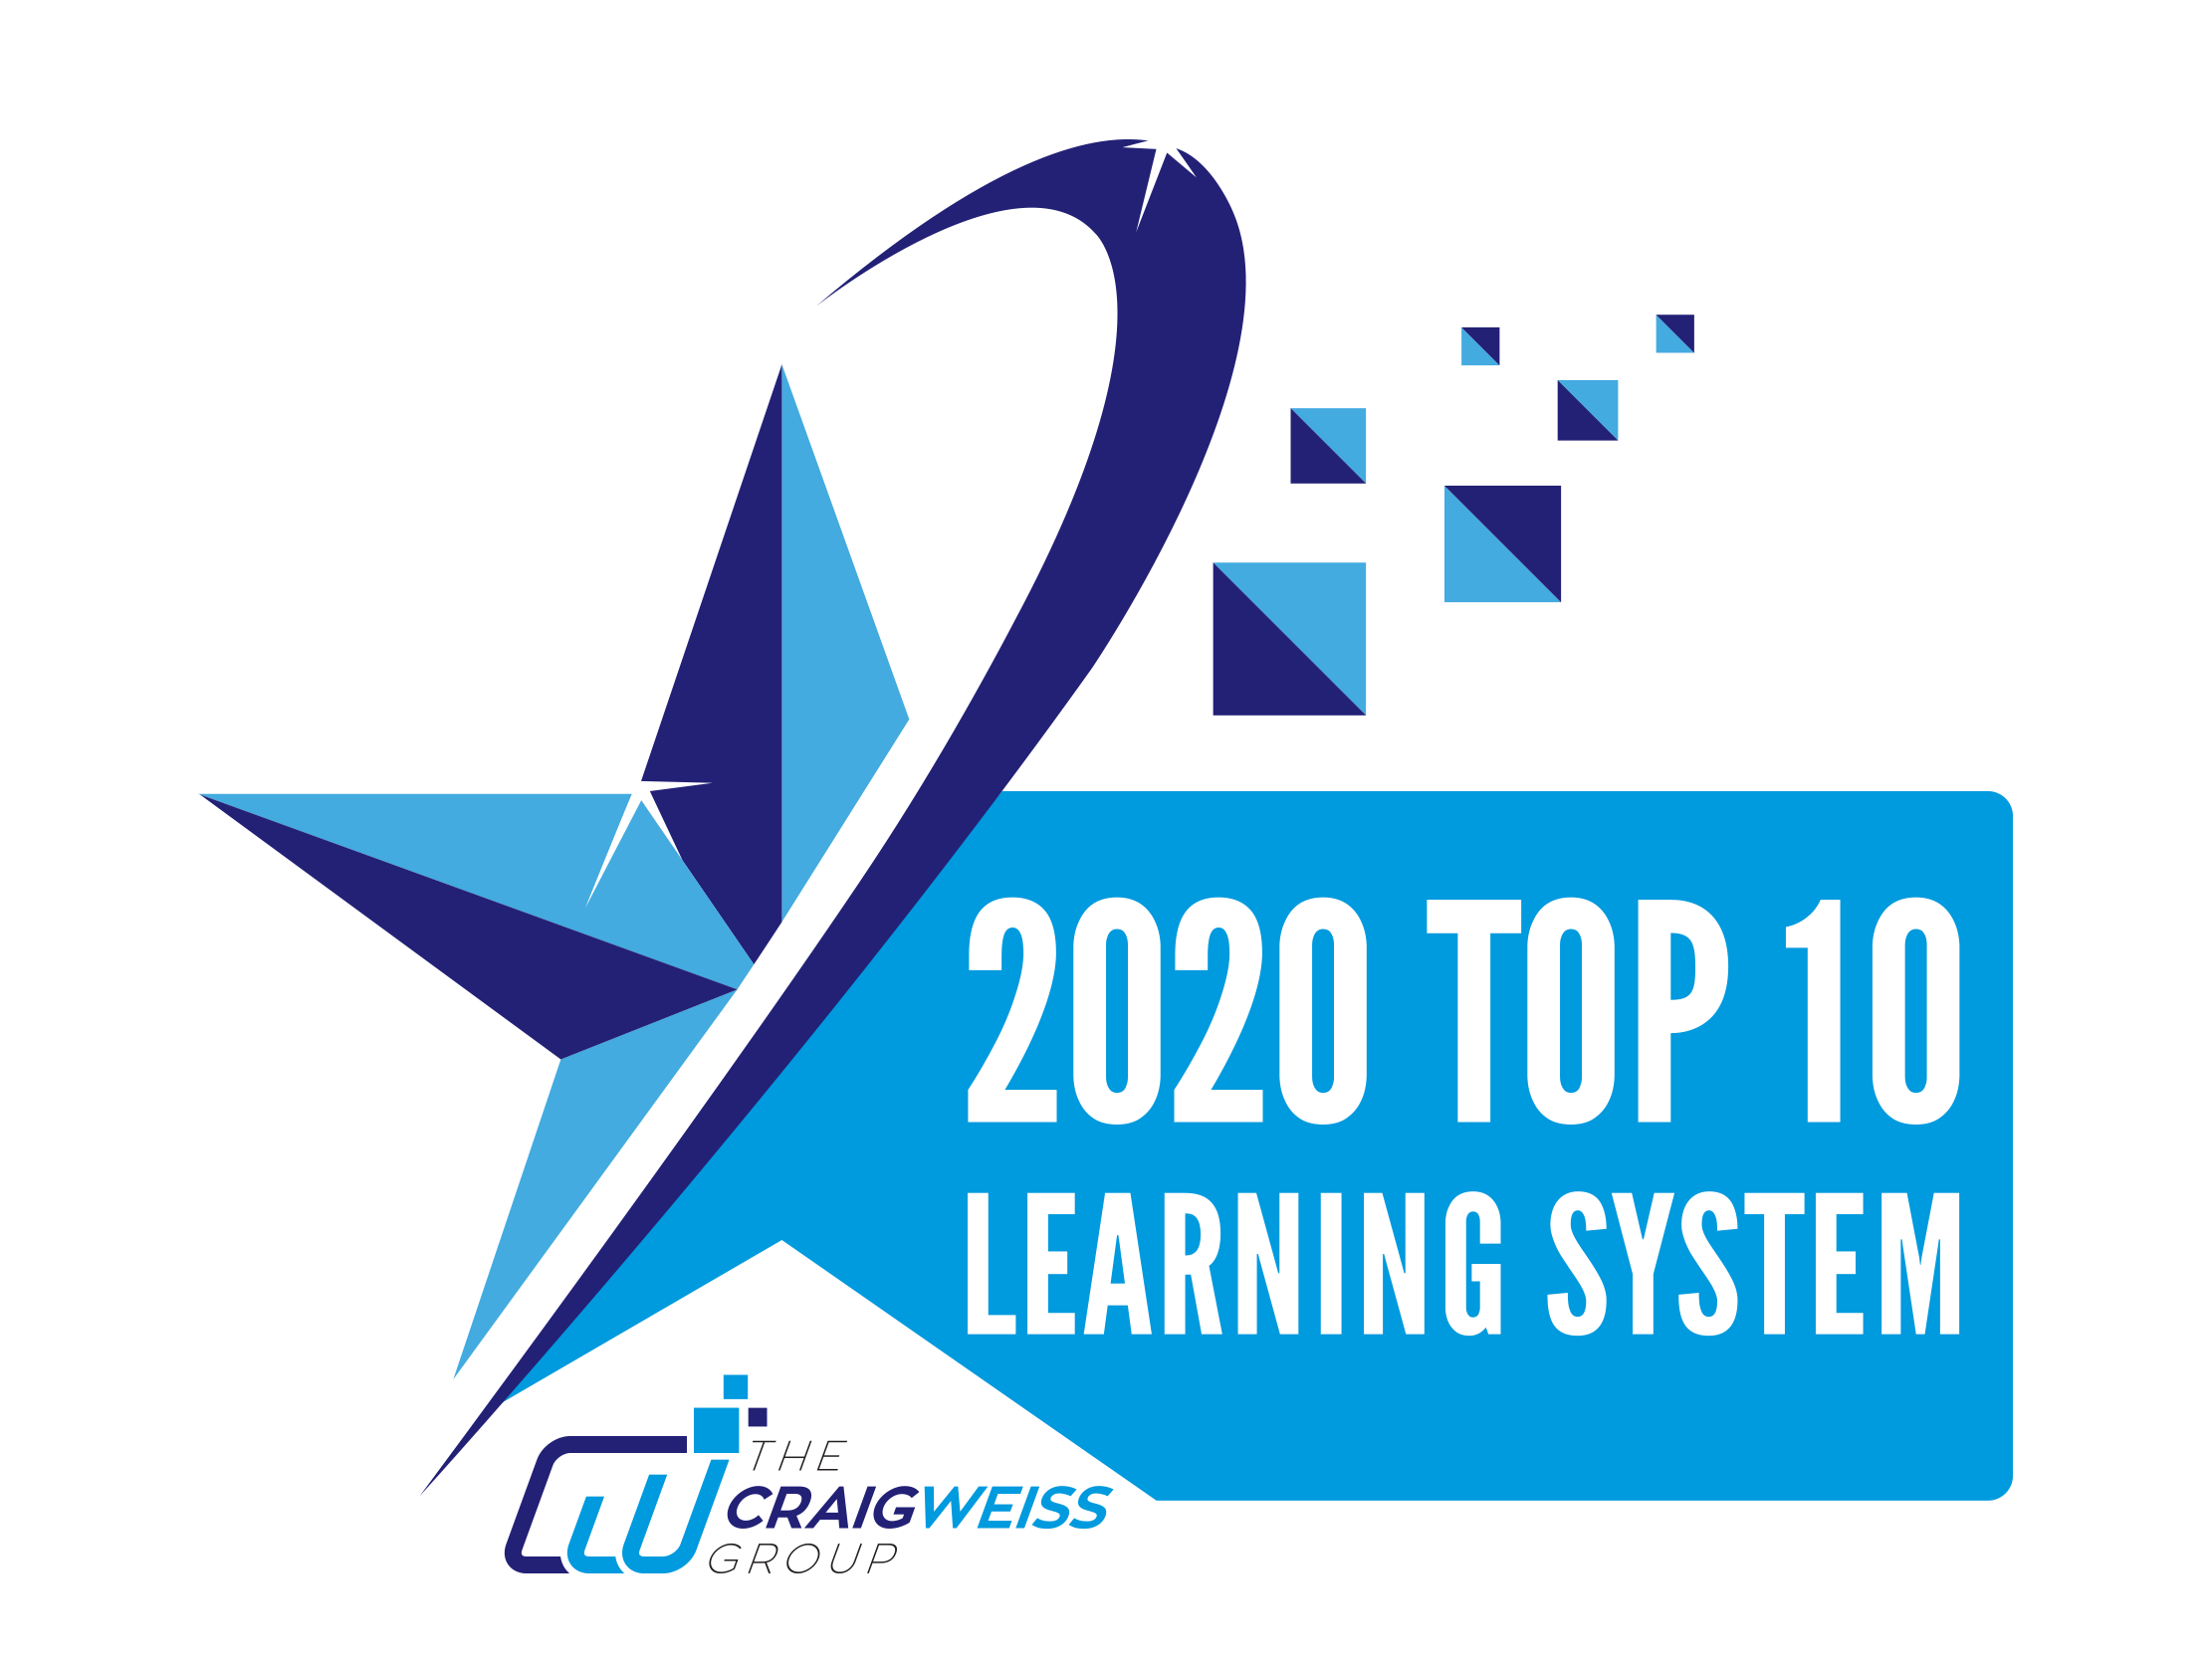 2020-TOP-10-Learning-System